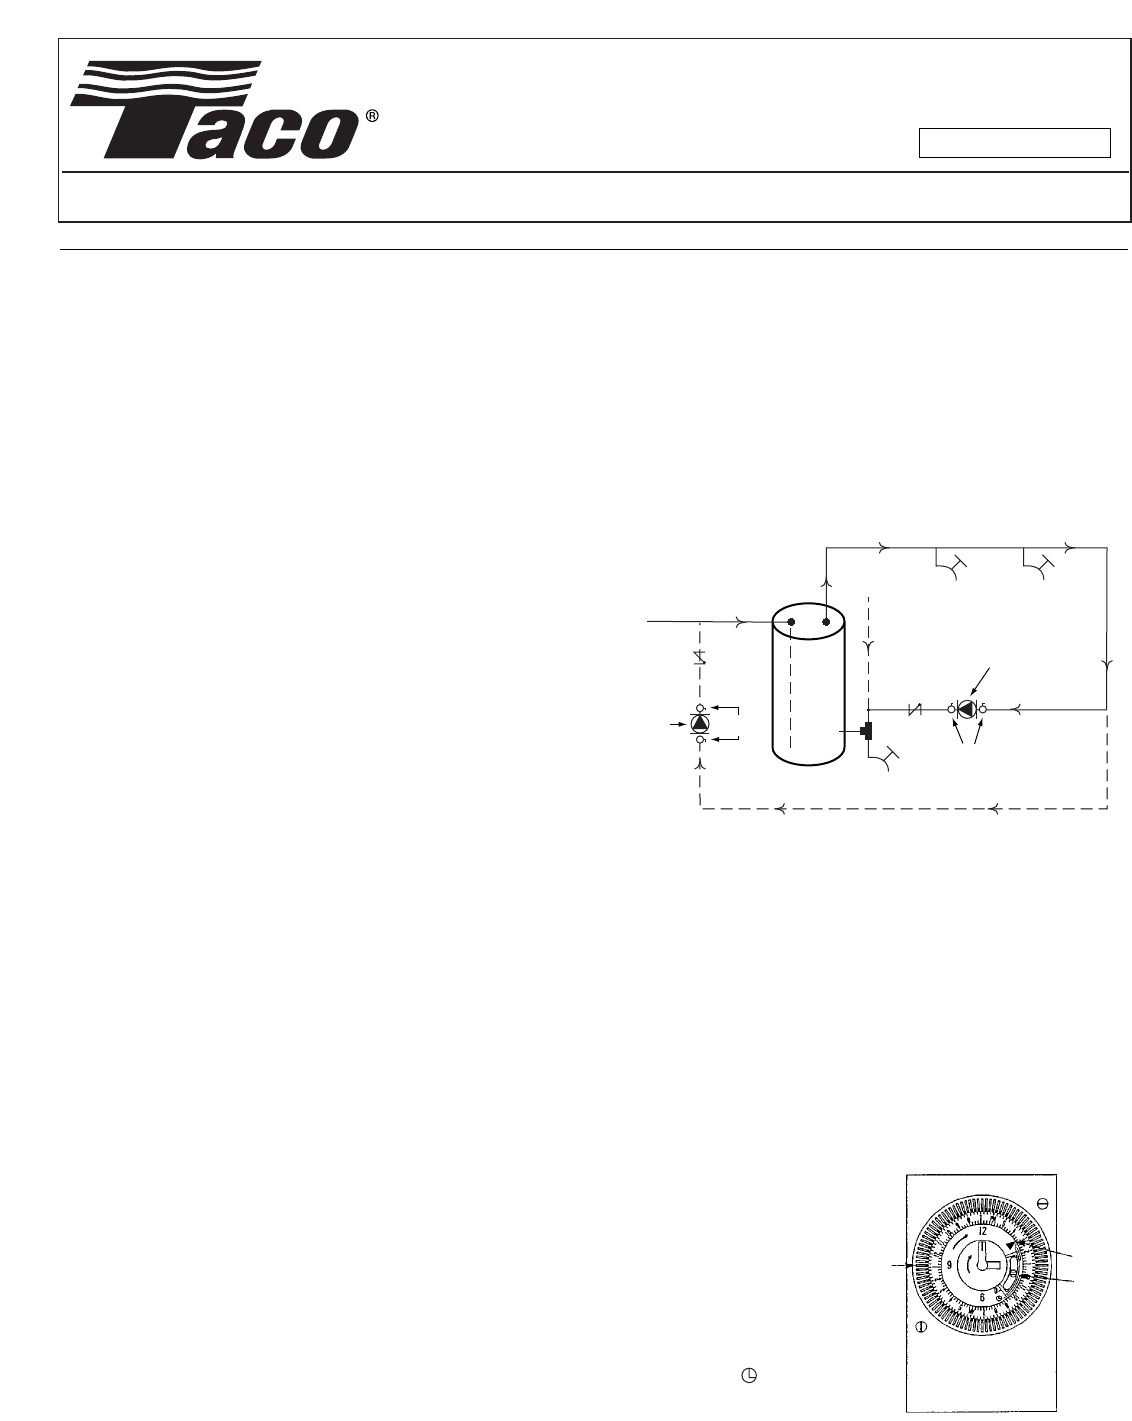 12708 3 Taco 006 St4 2pnp Instructions 102 100 User Manual Wiring Diagram